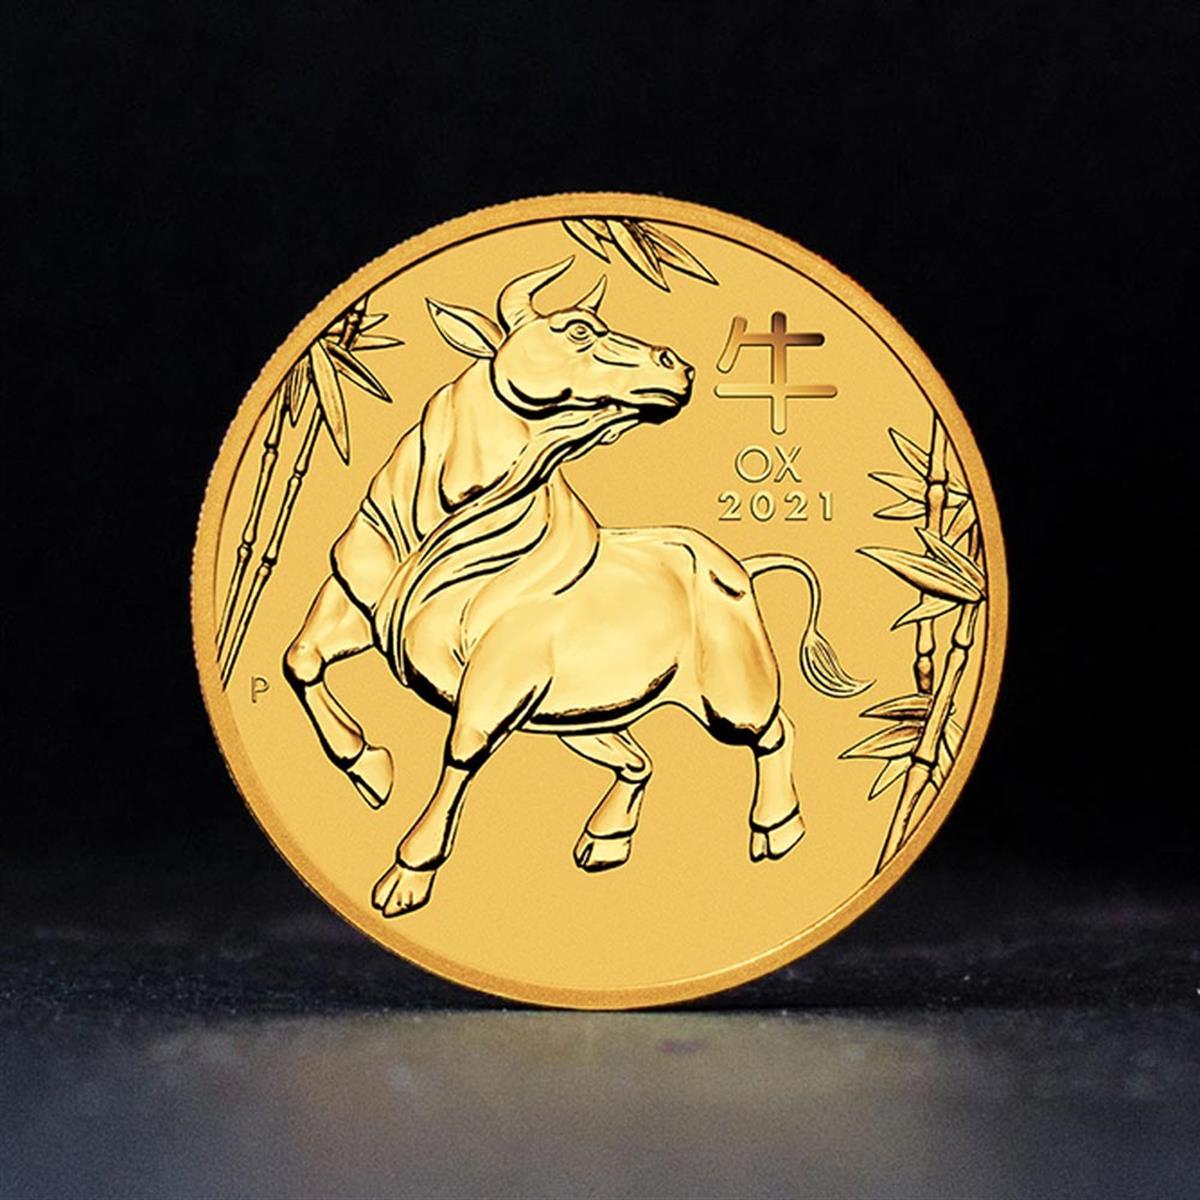 1/4oz Gold Coin 2021 Year of the Ox - Perth Mint